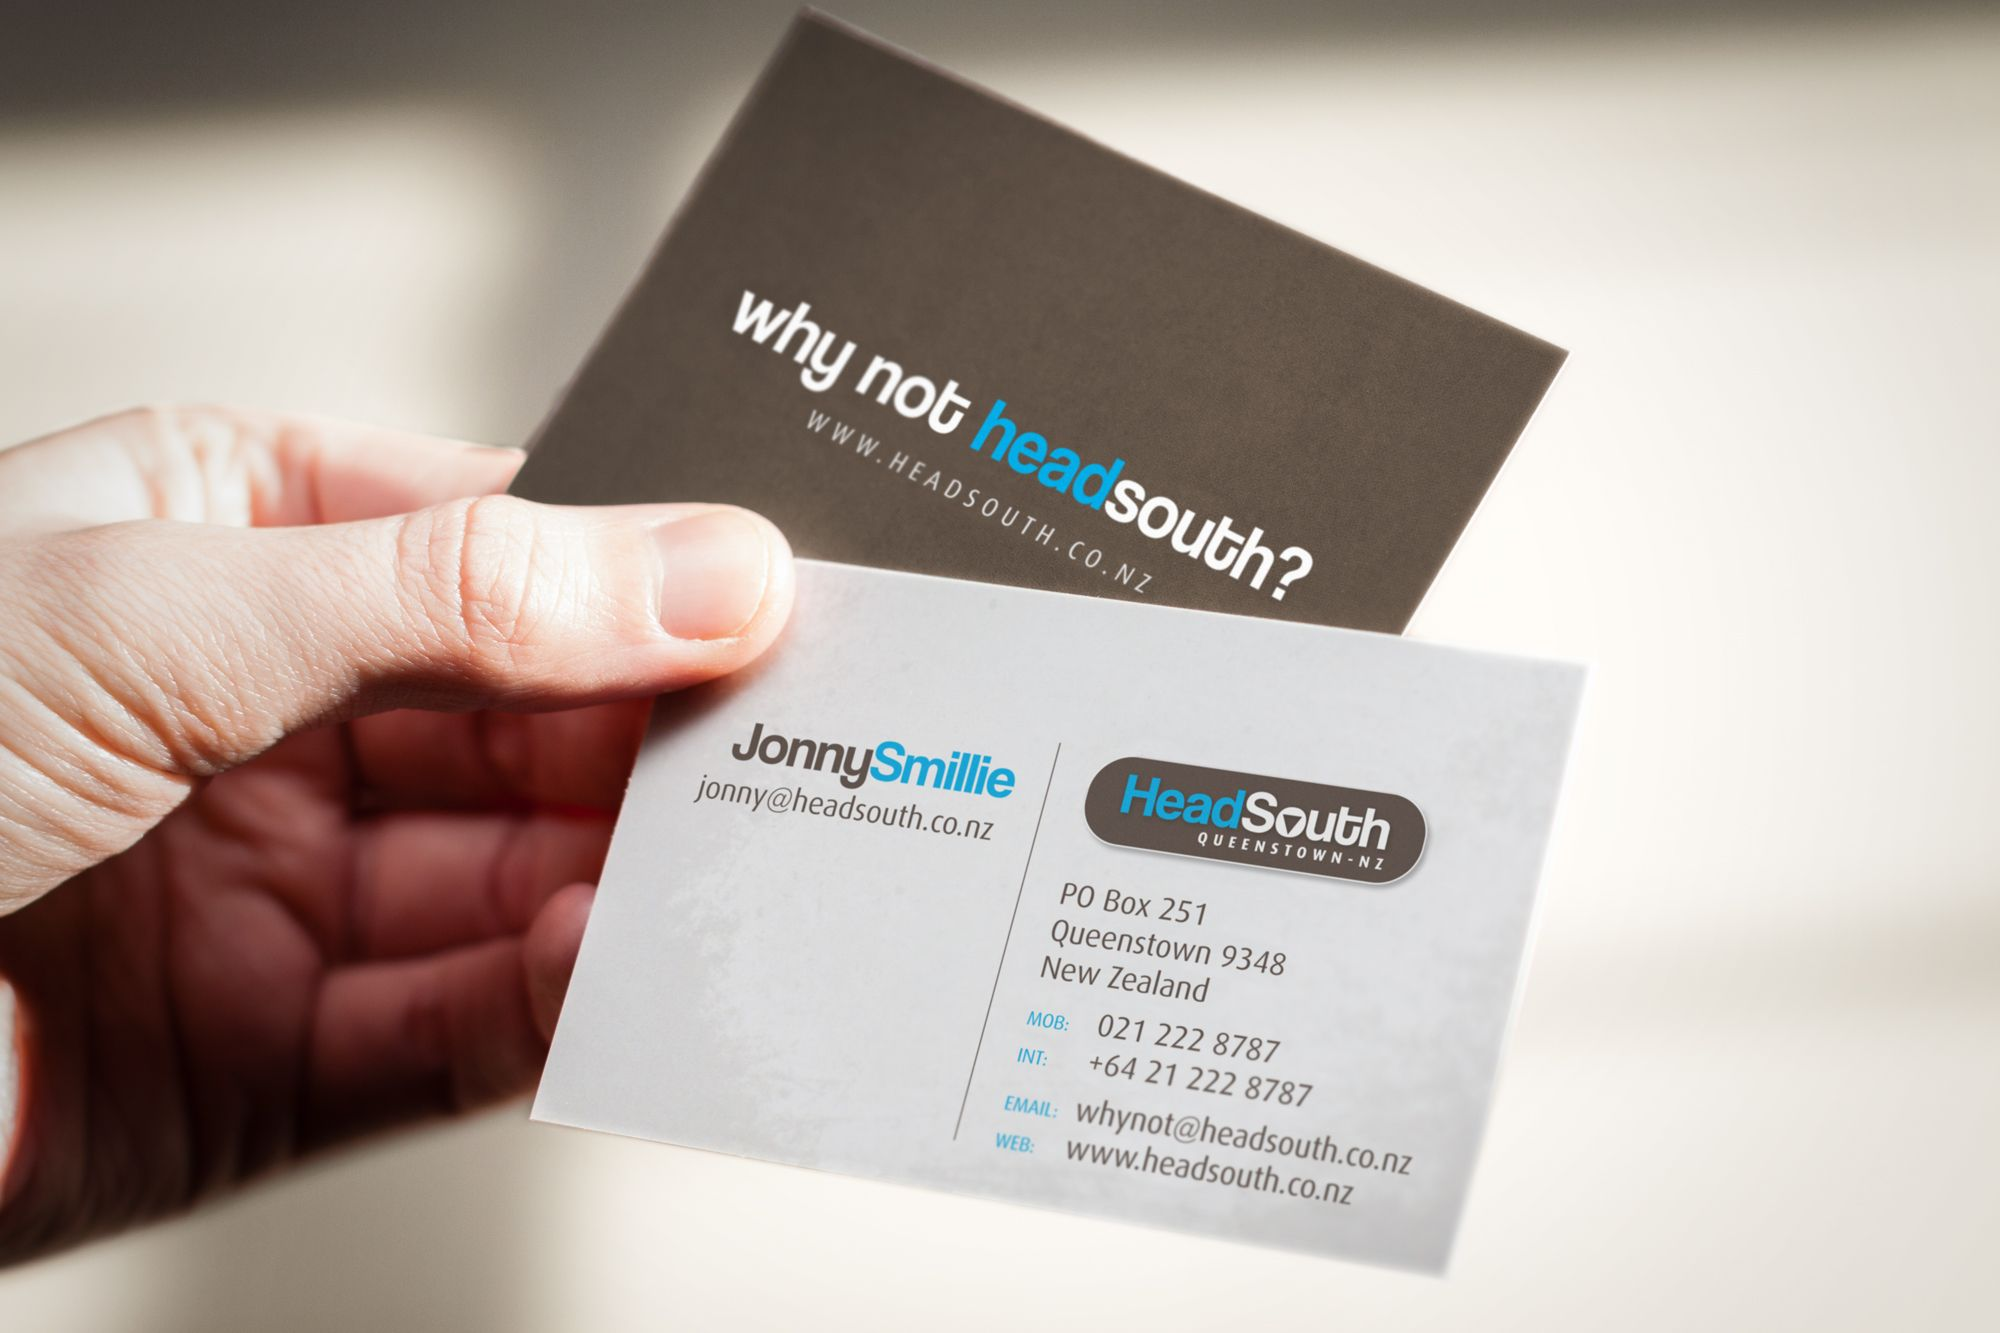 Head South Business Card Design Web Graphic Design Creative Stationery Business Card Design